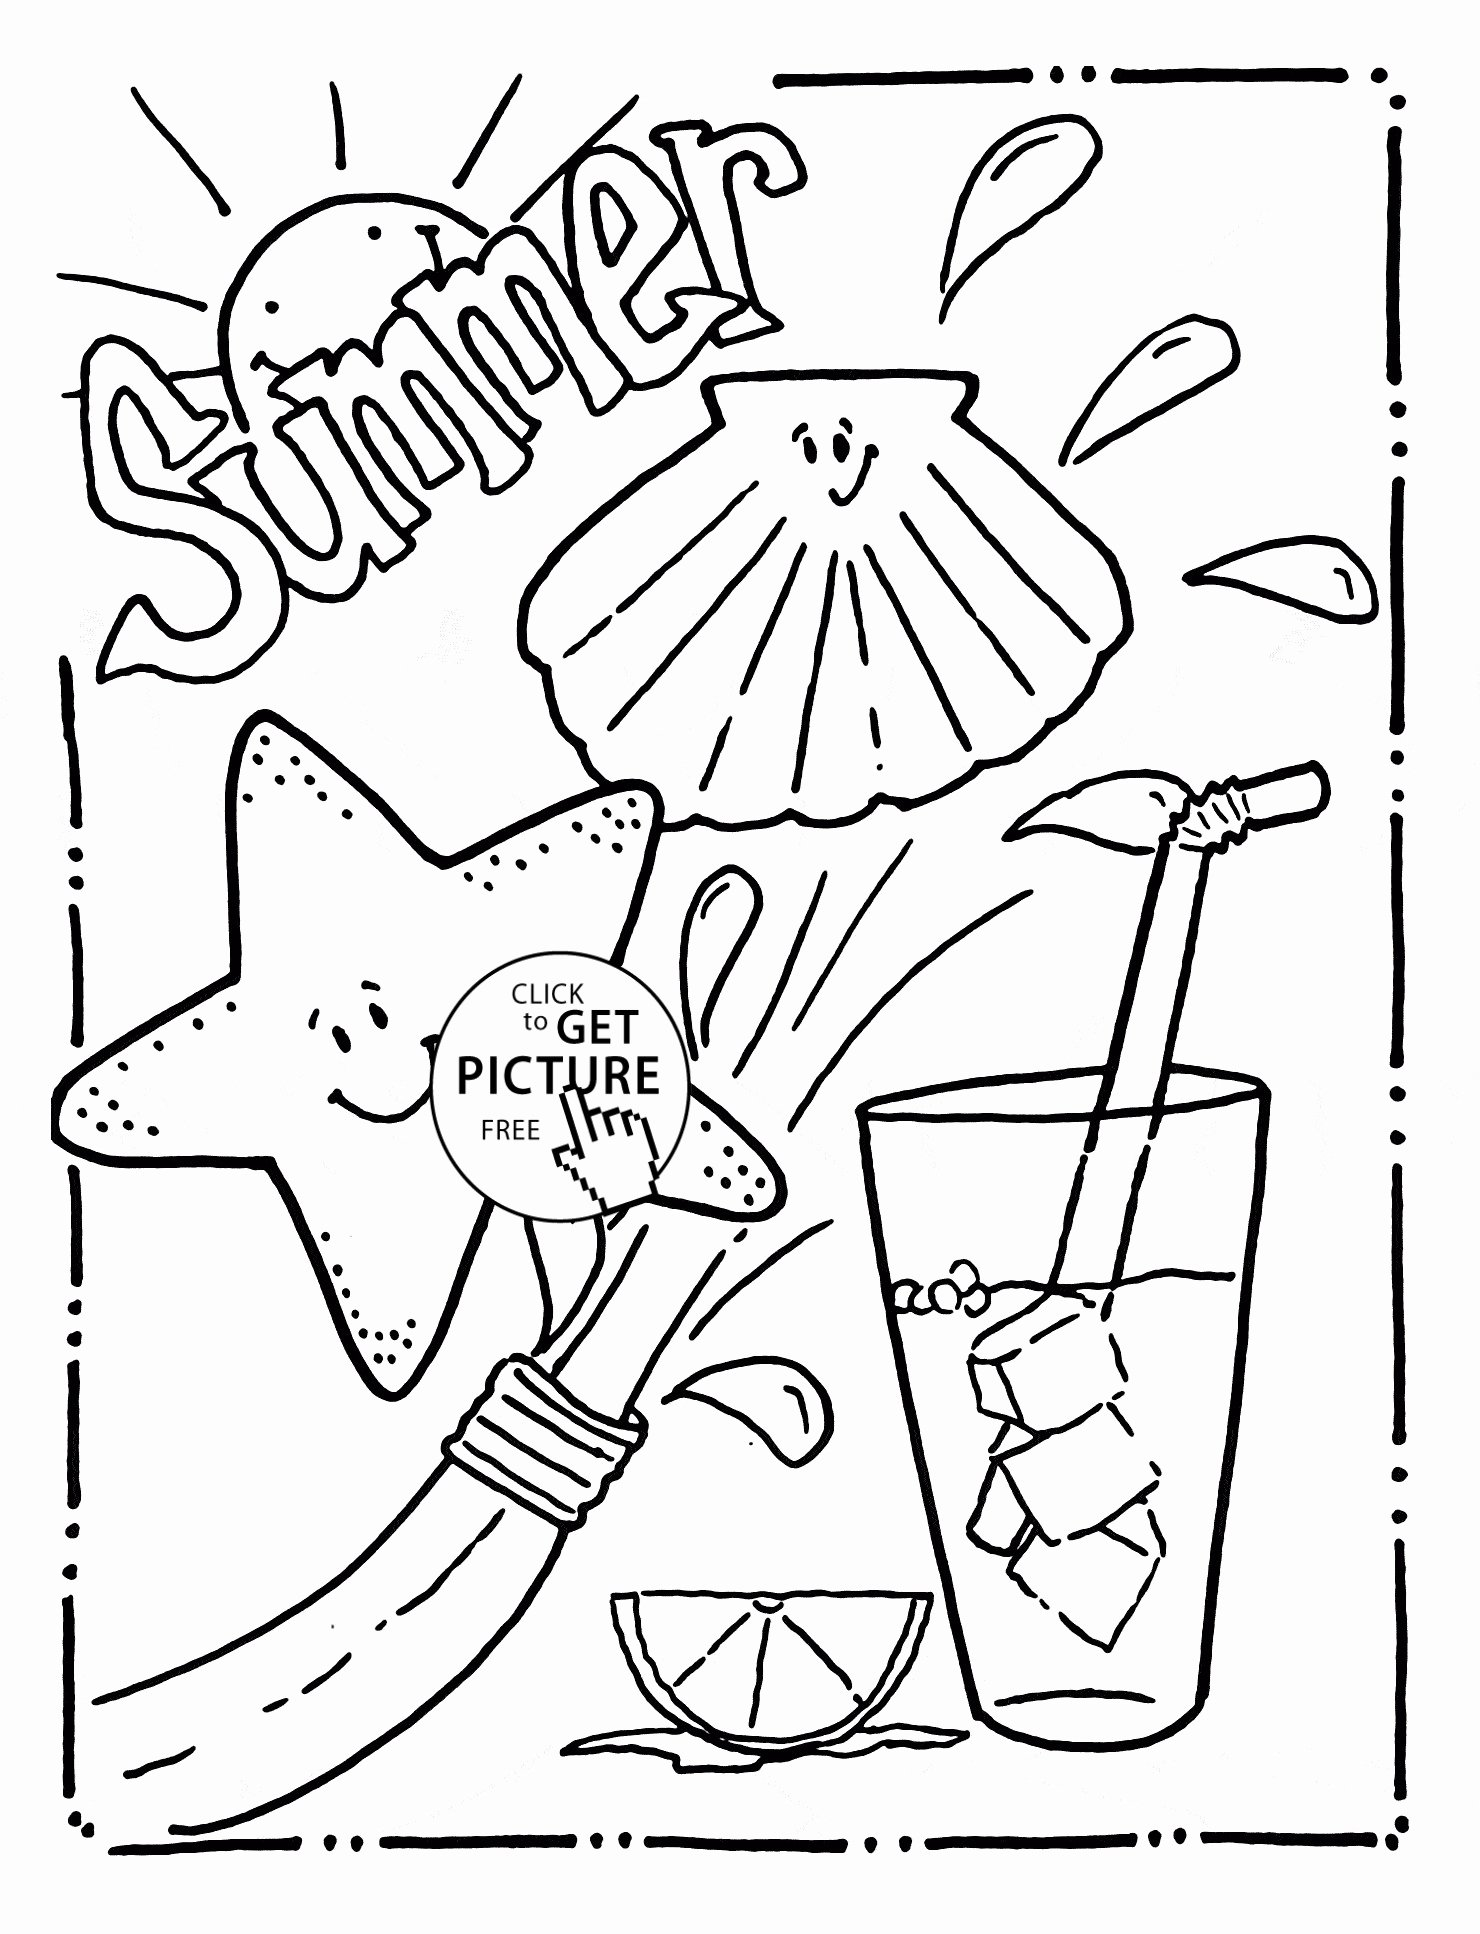 Summer Worksheets for Preschoolers Lovely Coloring Funng Worksheets for Kindergarten Summer Free